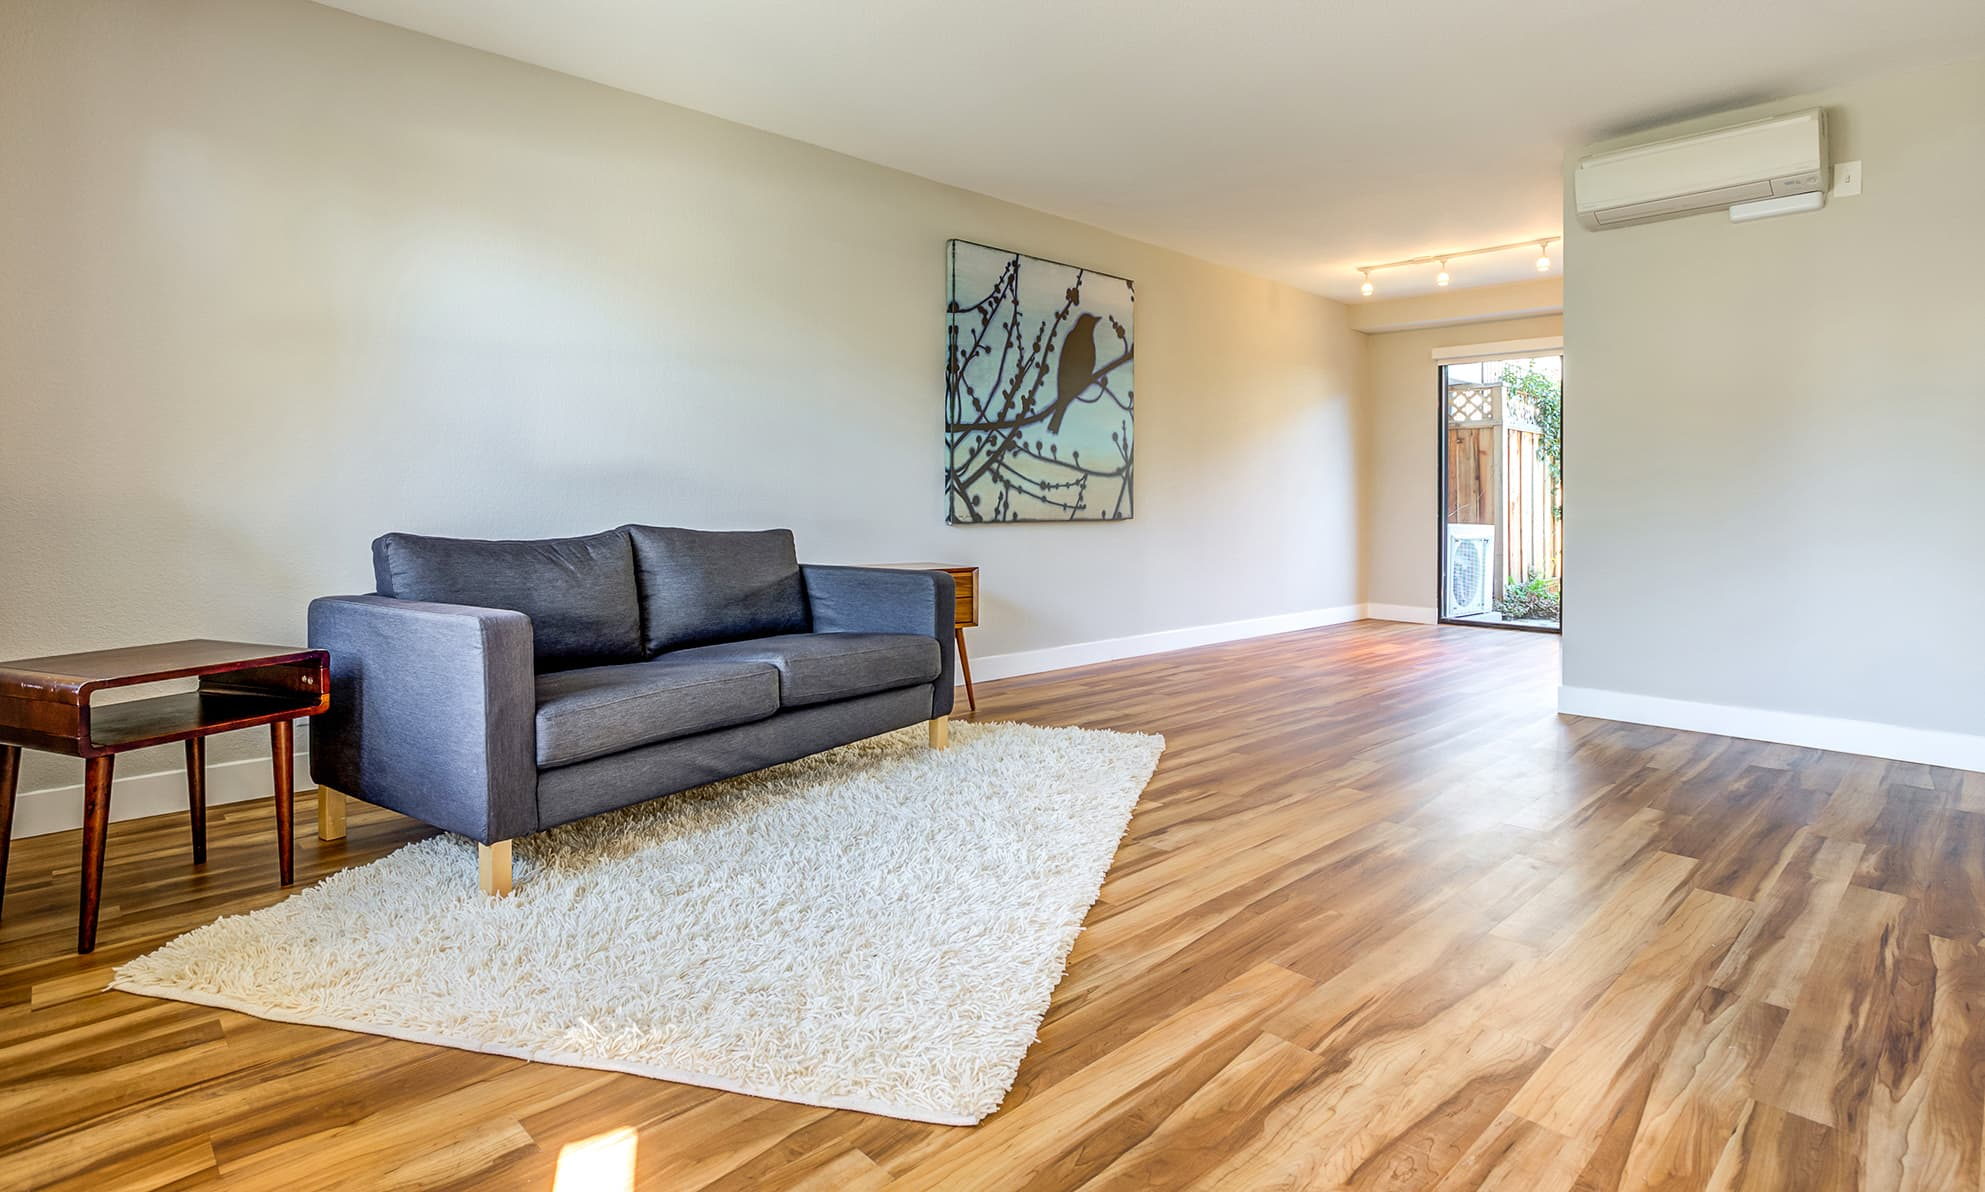 300 Granada Apartments apartments in Mountain View CA to rent photo 3